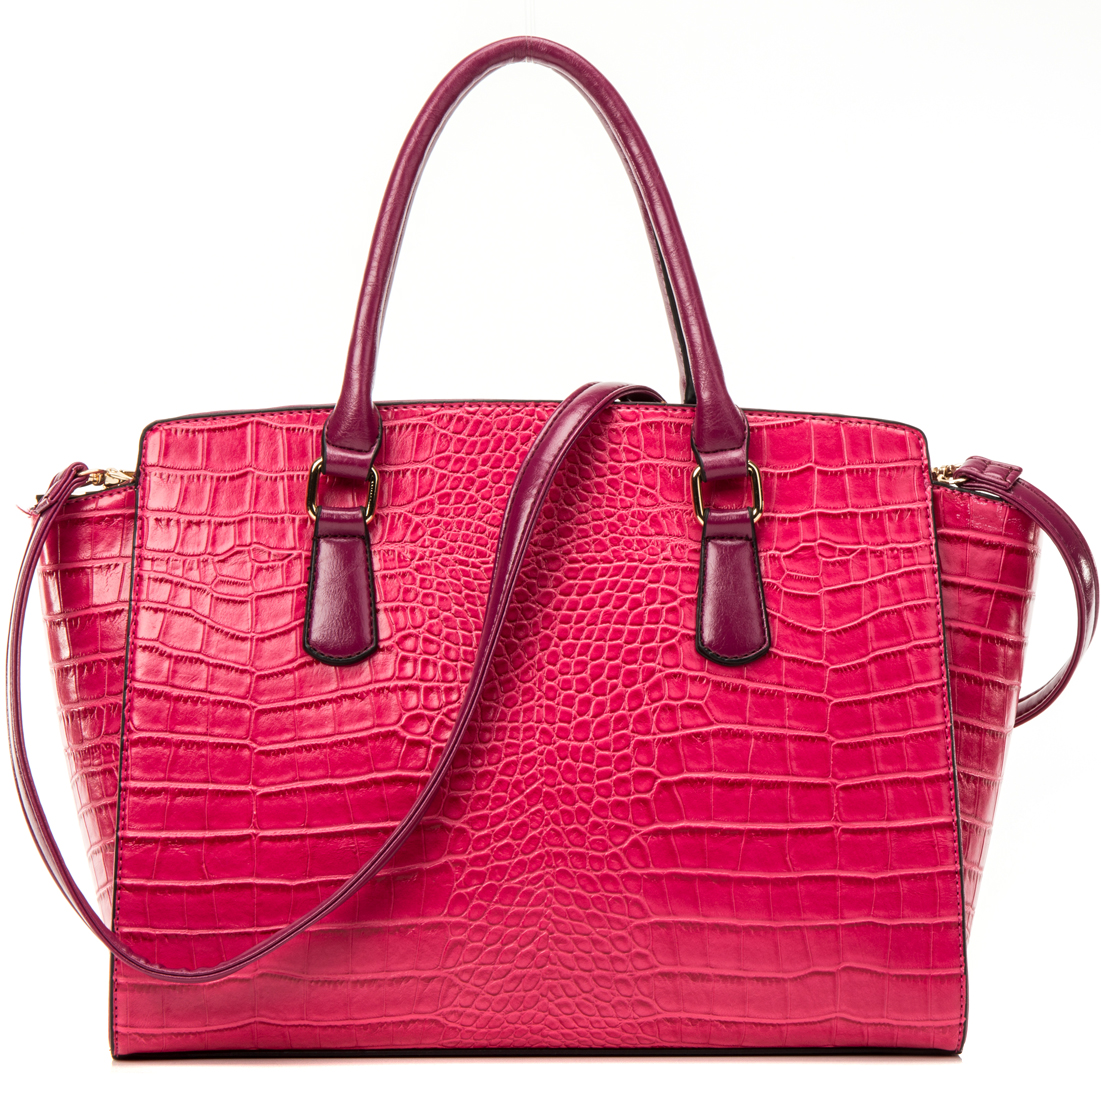 Dasein® Winged Croc Satchel w/Removable Shoulder Strap